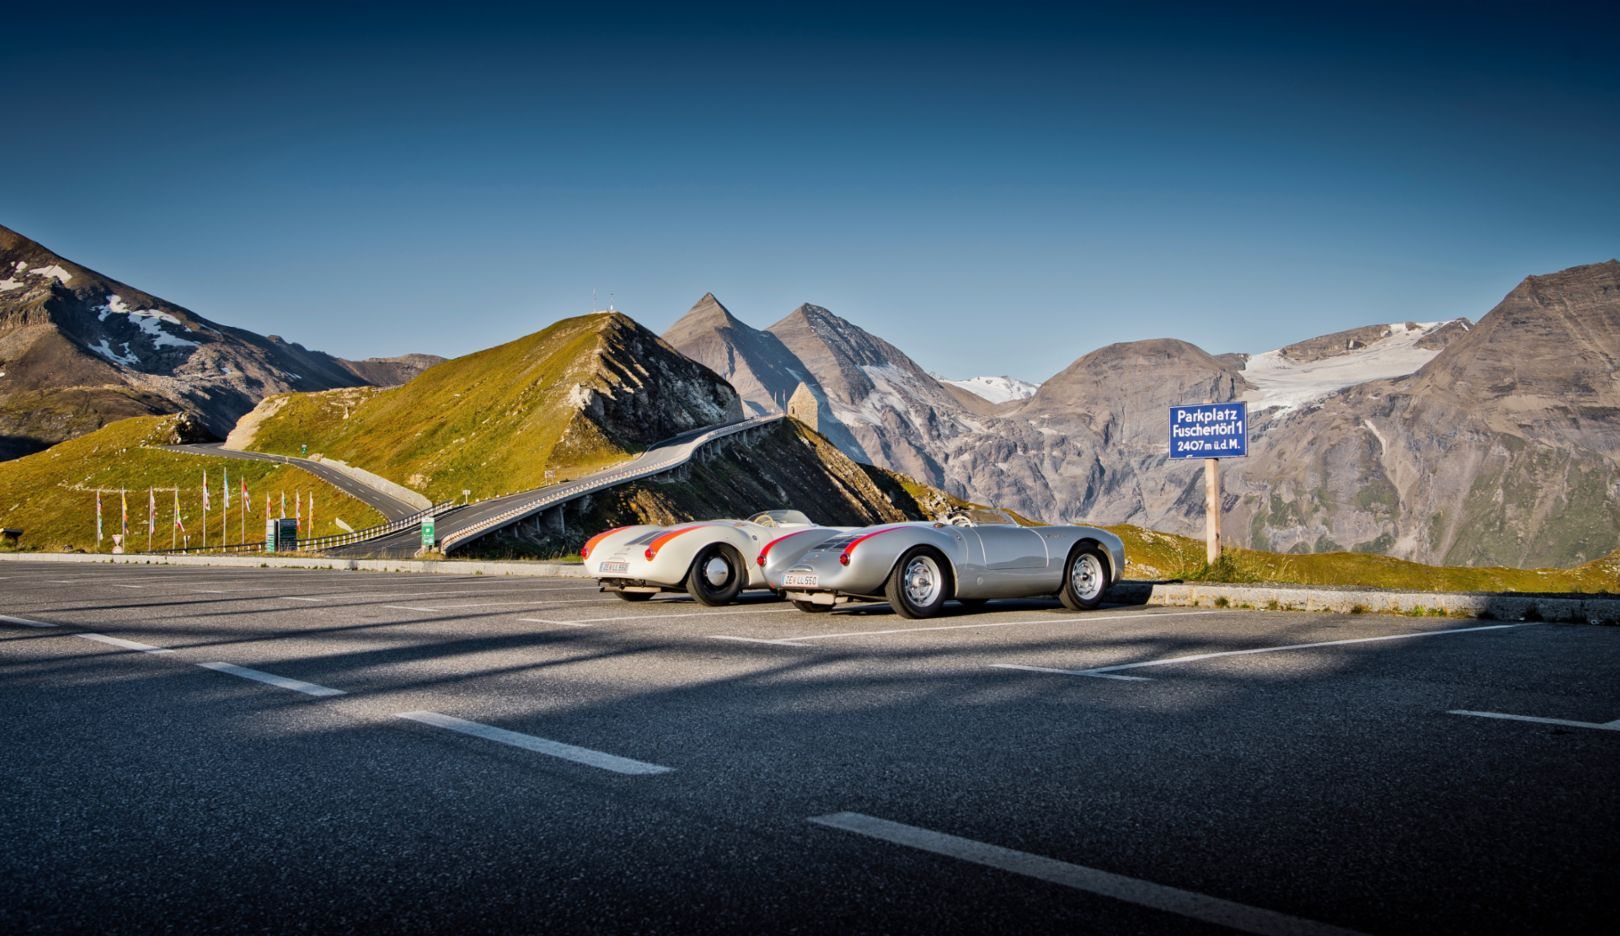 The cul-de-sac at the Fuschertörl branches off to the Edelweißspitze. The two Porsche 550s have already come a long way, but their upwards journey still has about 170 meters to go.